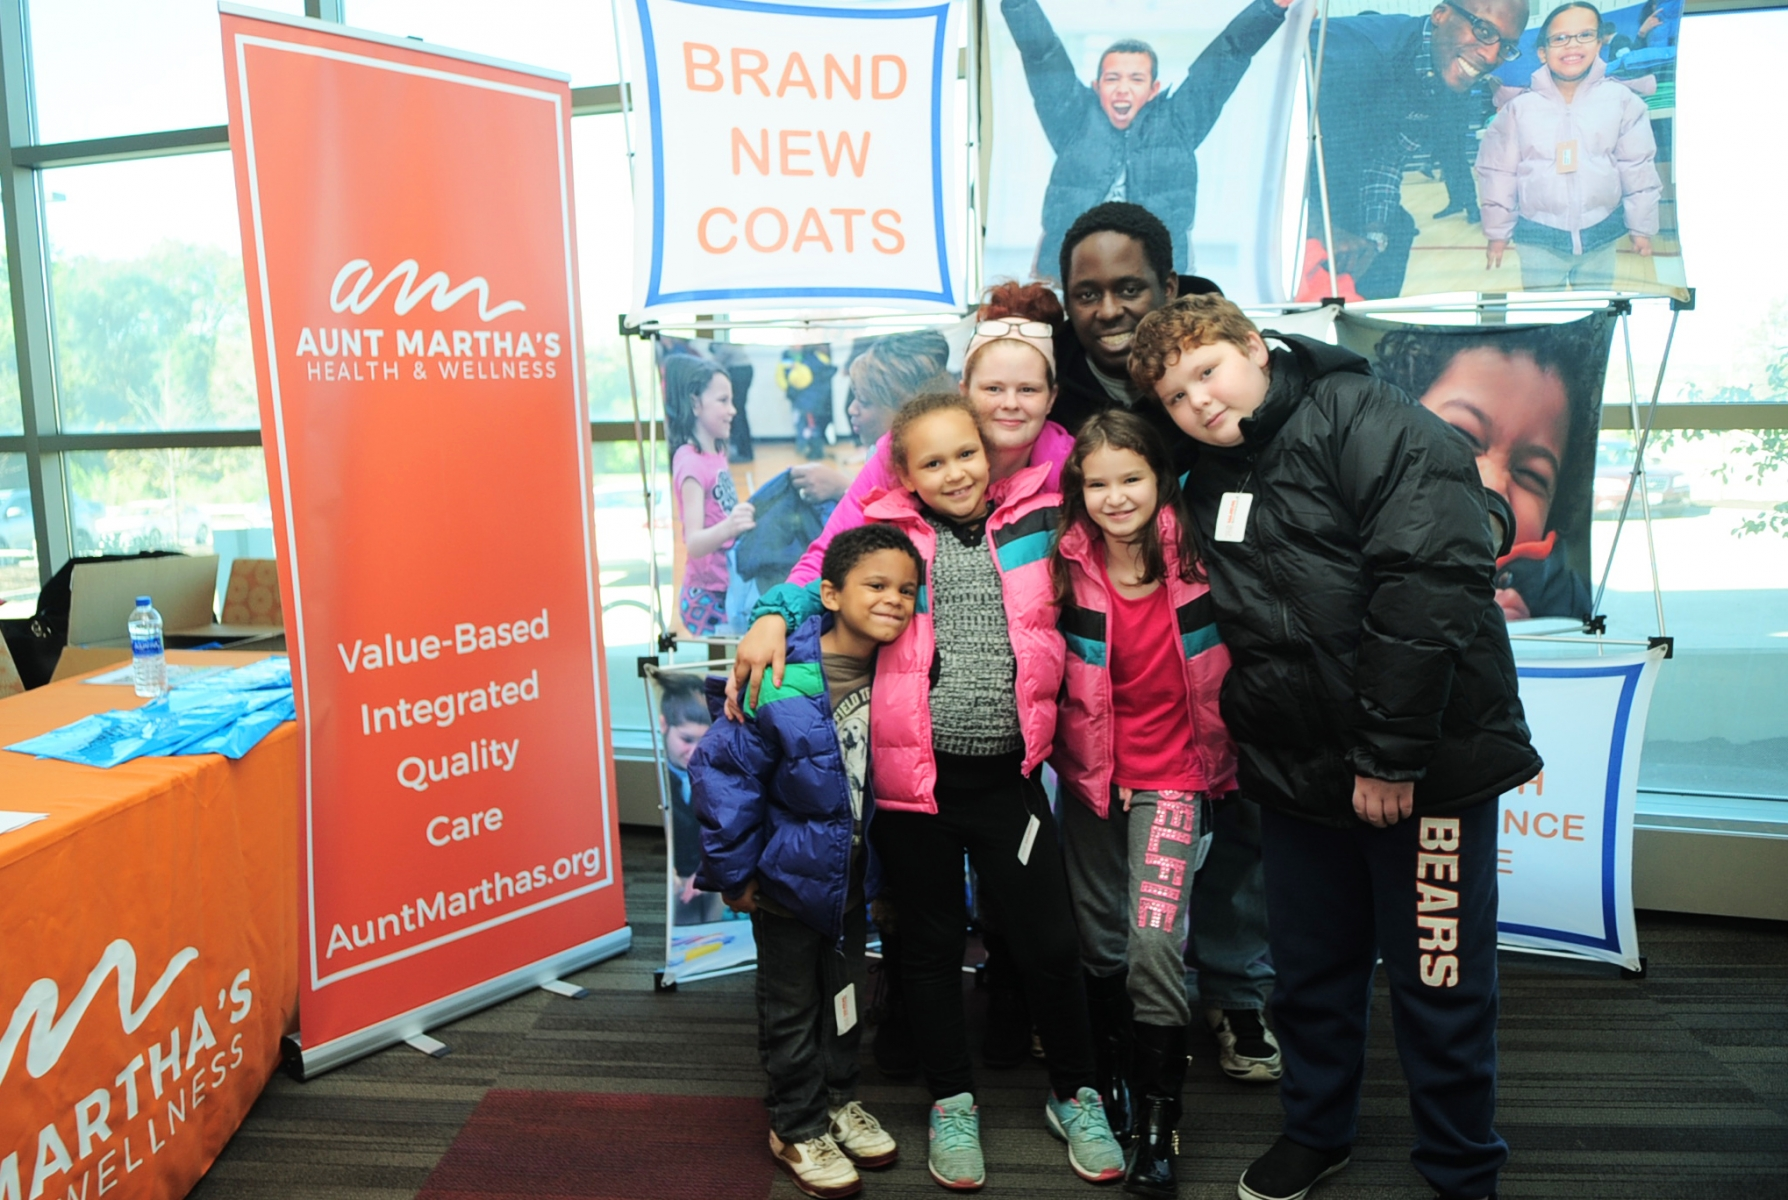 10-20-18 Aunt Martha's Coat Drive and Flu Shots, Joliet IL Ashley Dixon and Montez Harmon, join their kids (L-R) Trevian, Serenitie, Harmony, and Jonathon in proudly showing there new winter coats they received at the Operation Warm give away at Aunt Martha's.    Photo by John Booz